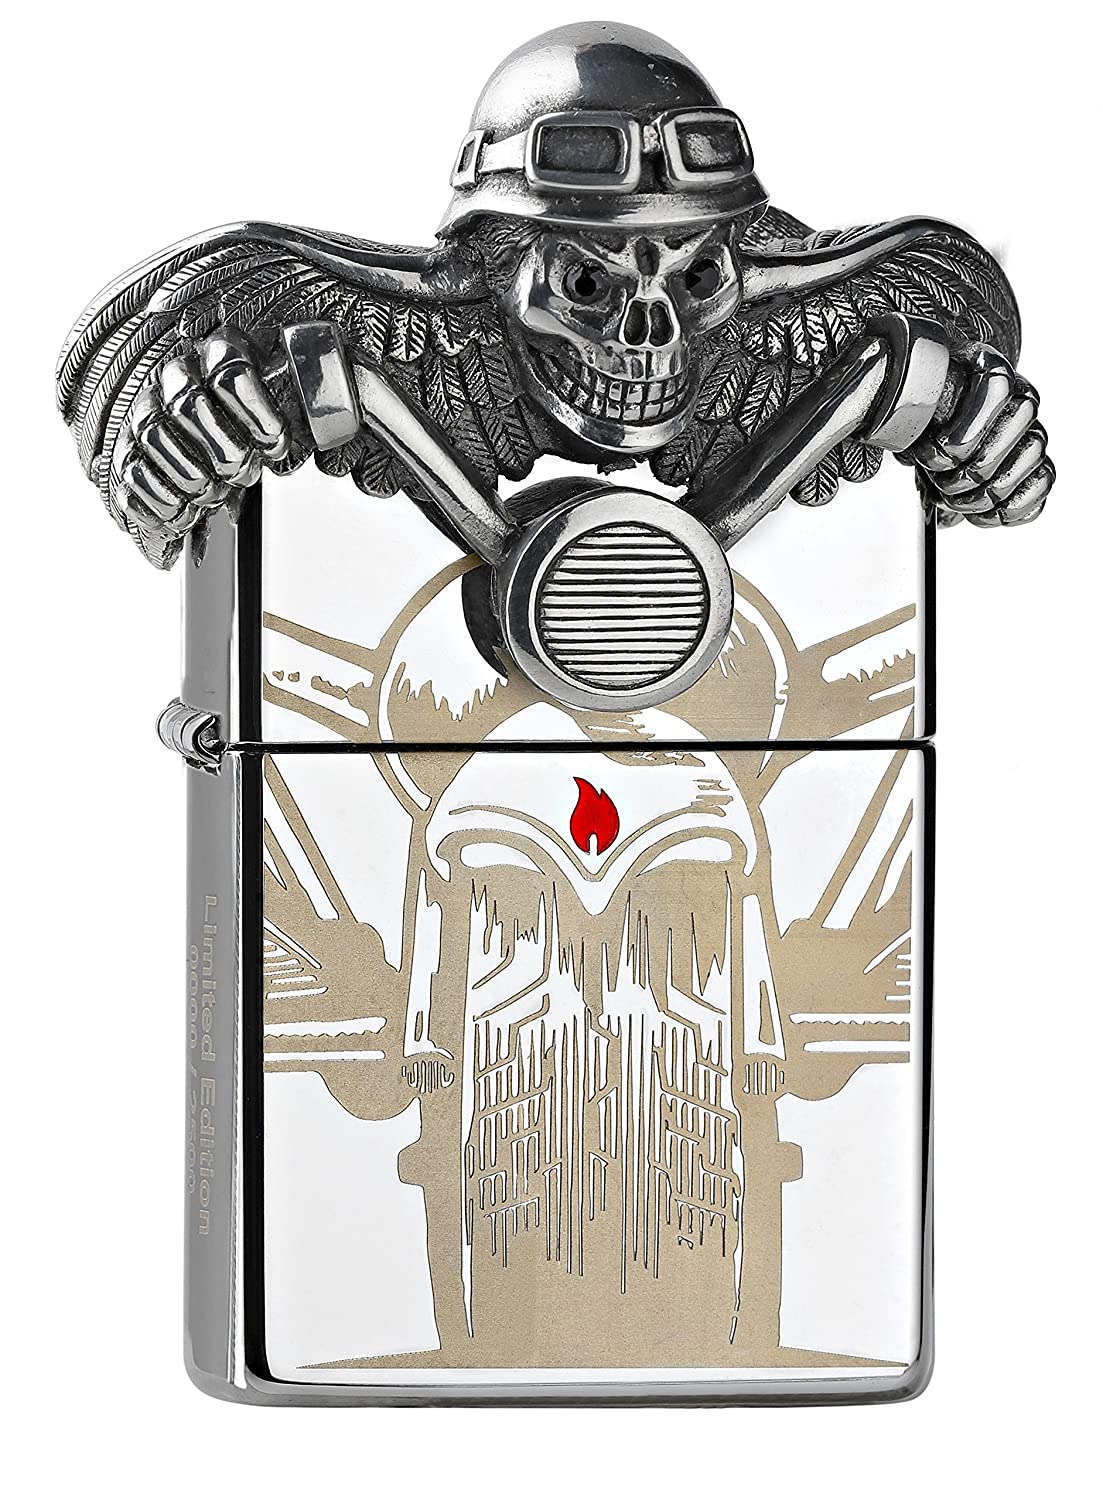 Zippo Death Rider - Limited Edition 2500 Pieces-Chrome High Polished-Special Collection 2017 Sturmfeuerzeug, Silber, 6 x 4 x 2 cm